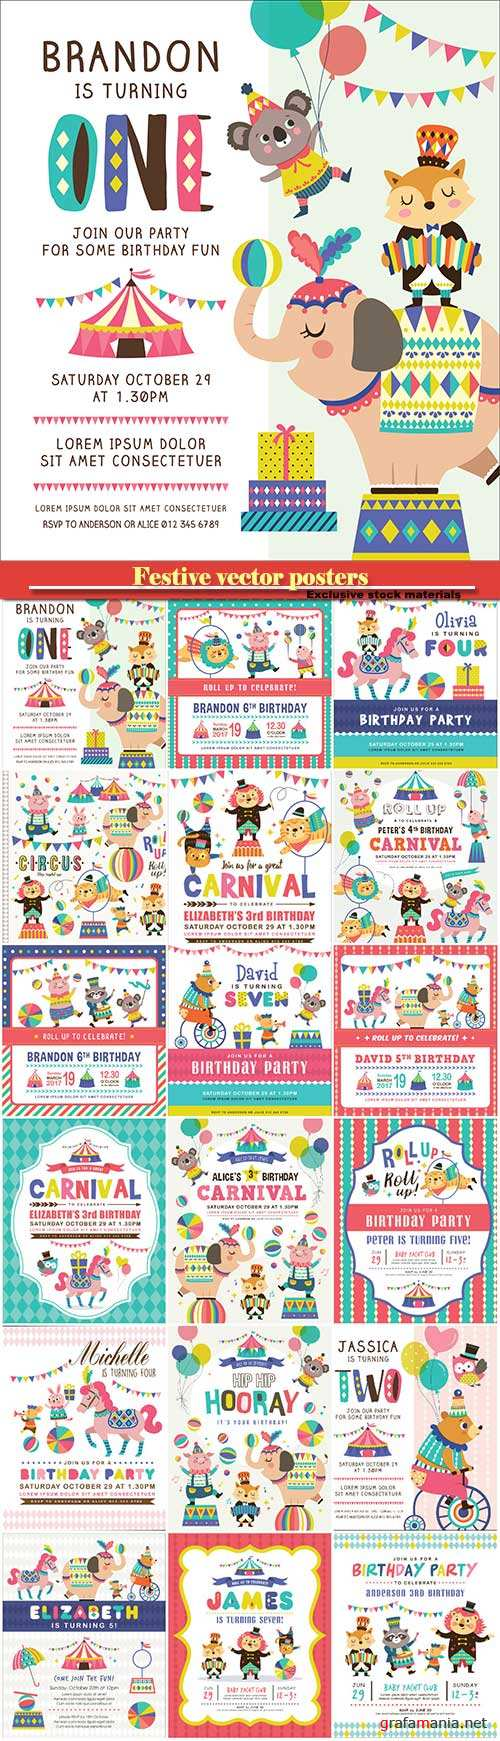 Festive vector posters with children's illustrations